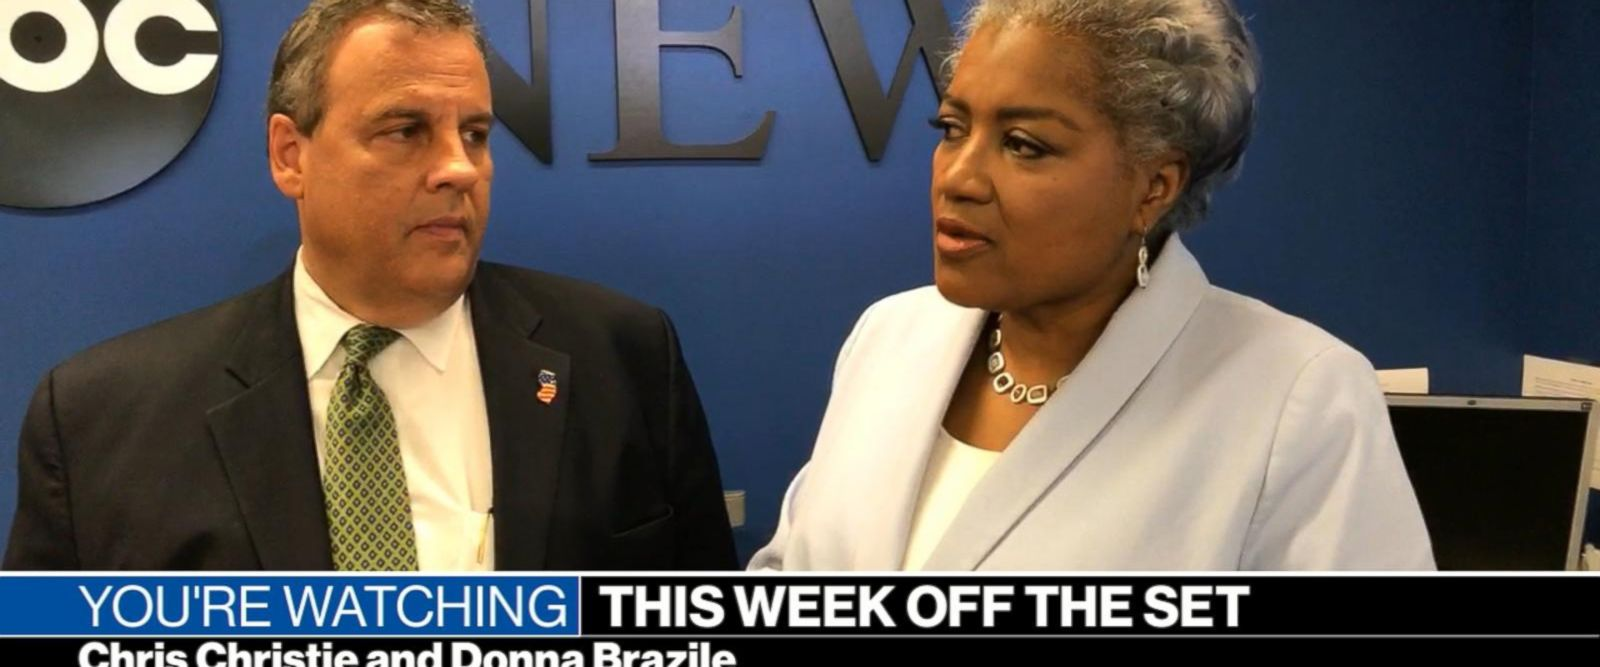 VIDEO: This Week Off the Set with Chris Christie, Donna Brazile